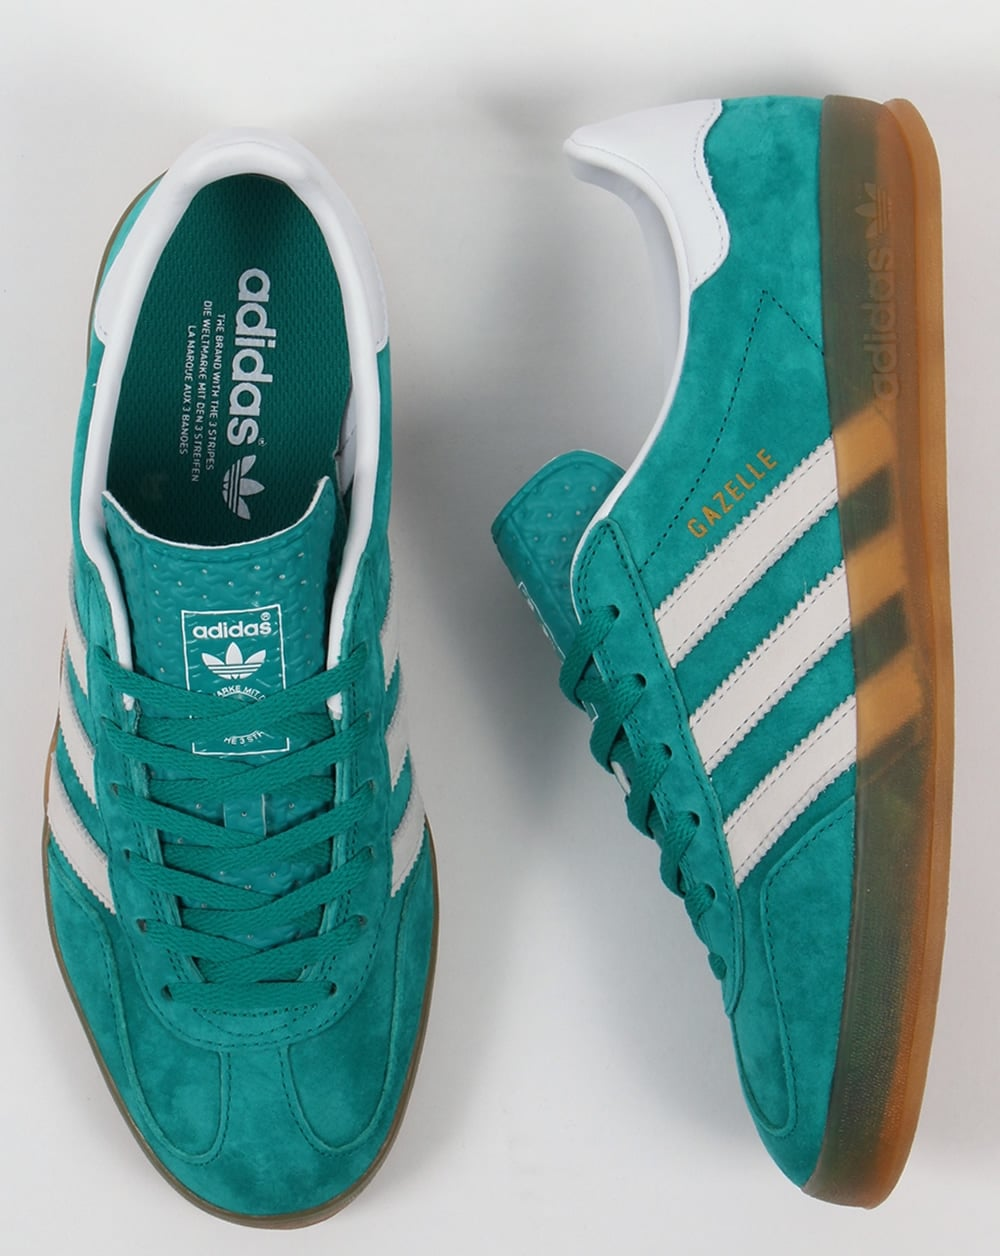 adidas gazelle green and white